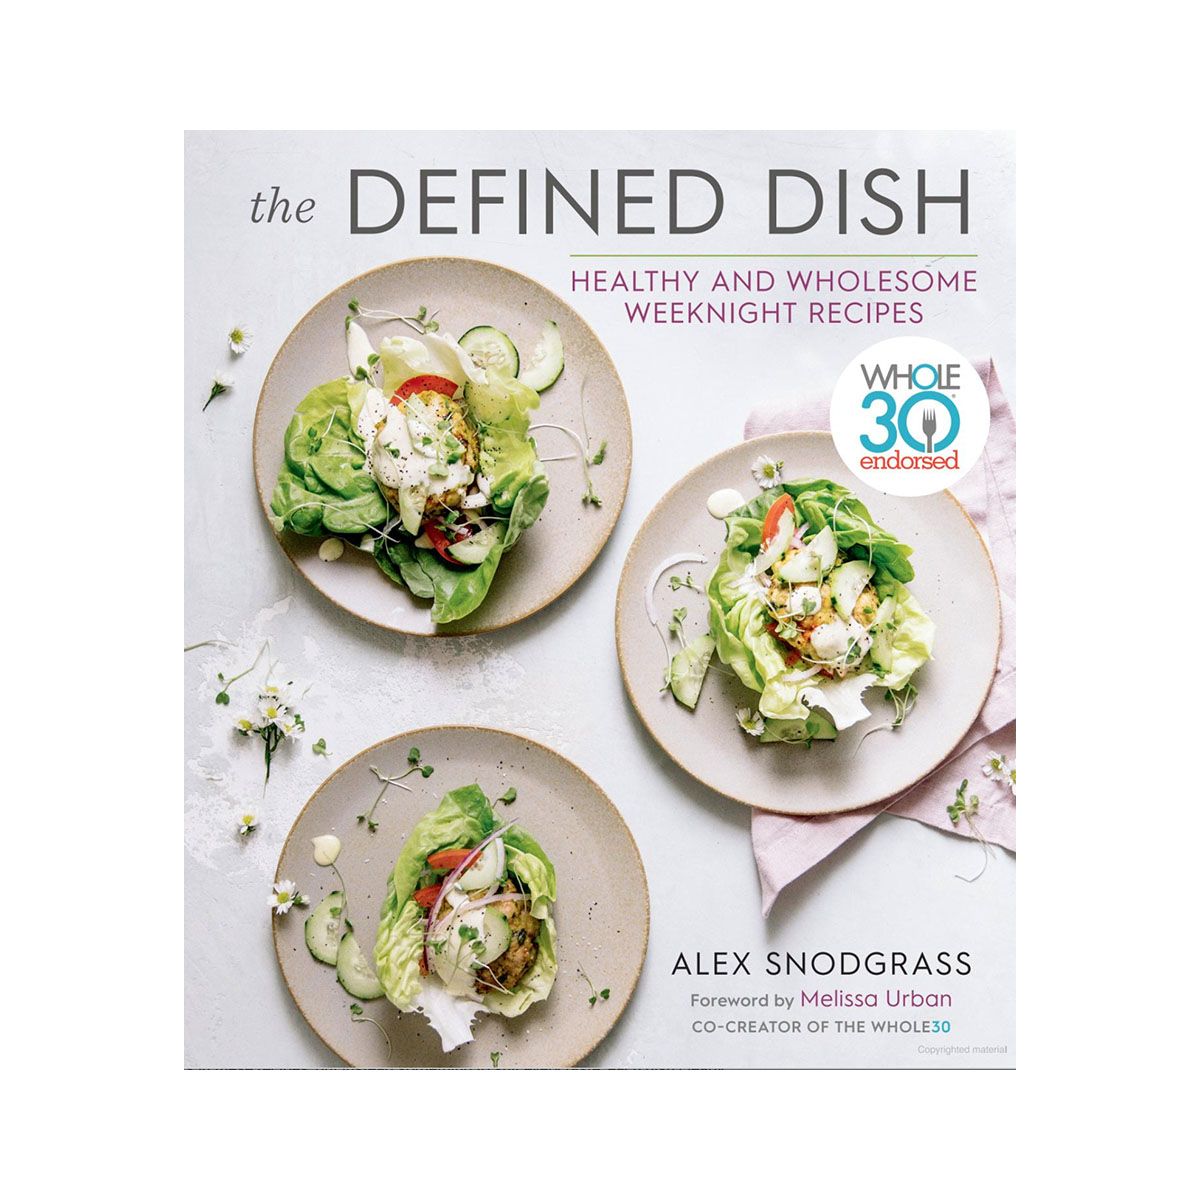 The Defined Dish